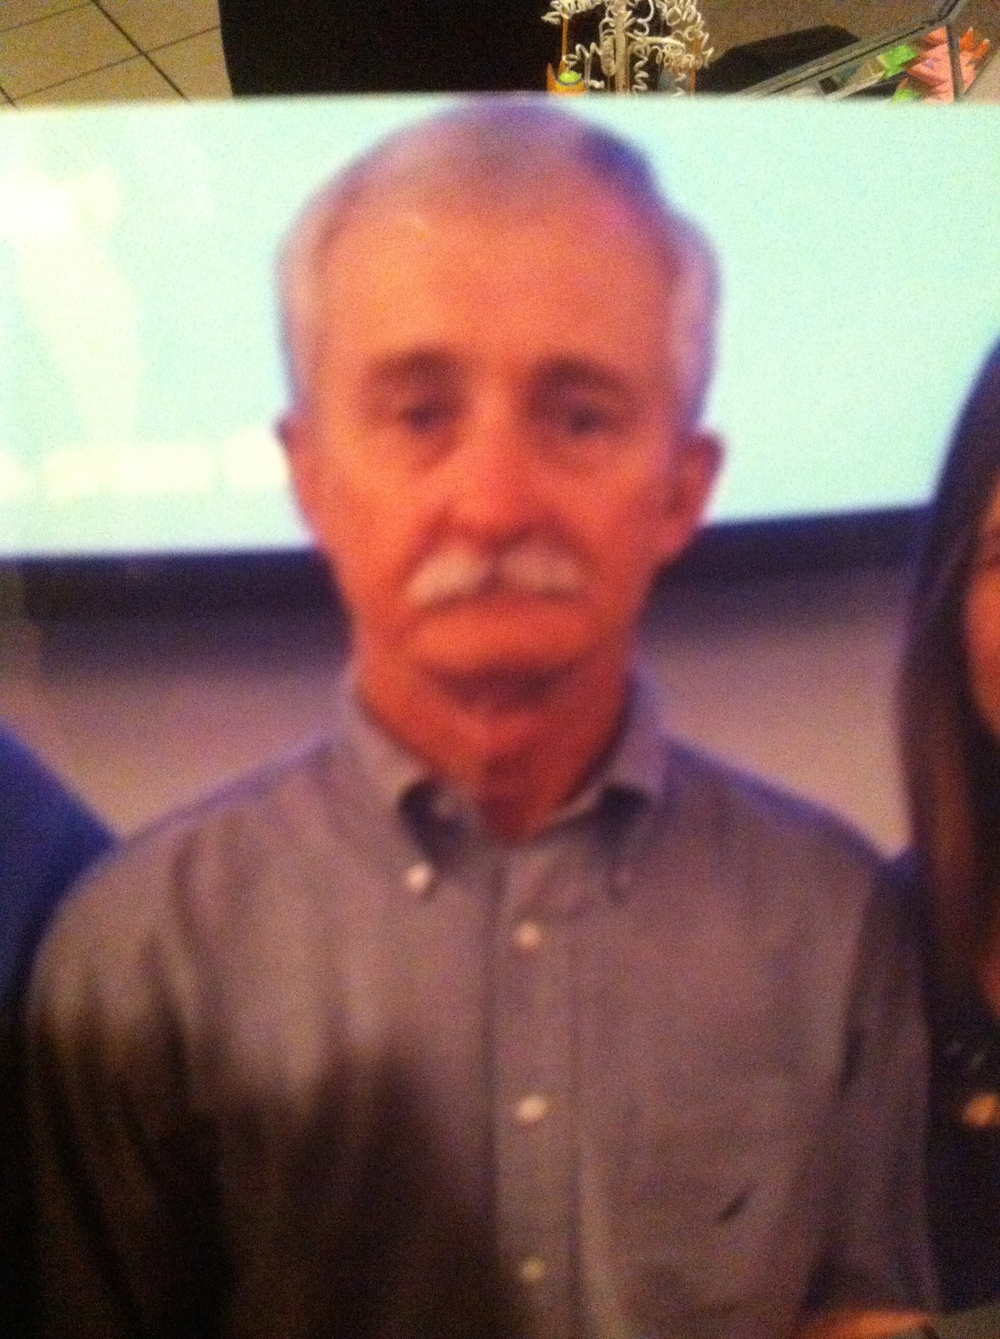 PHOTO:  MISSING: David Claude Siwarski of 1423 SE 27th Street Cape Coral, FL.  (Photo Courtesy of Cape Coral Police Department)